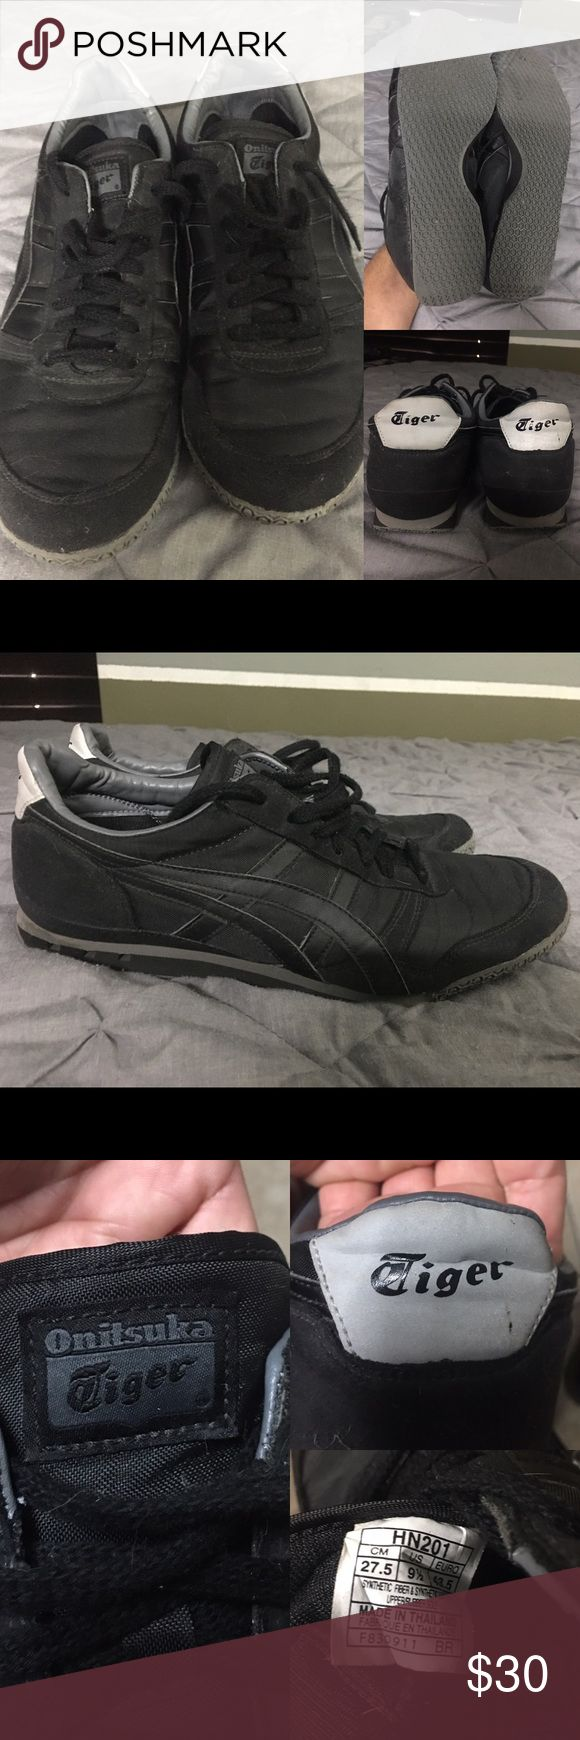 Asics Onitsuka black Tiger retro sneakers For sale! Black on Black Asics Onitsuka Tiger retro style sneakers 👟 worn very few times. Soles and inside of shoes are in near excellent condition. These are a rare combo of colors. Very comfortable. Onitsuka Tiger by Asics Shoes Sneakers